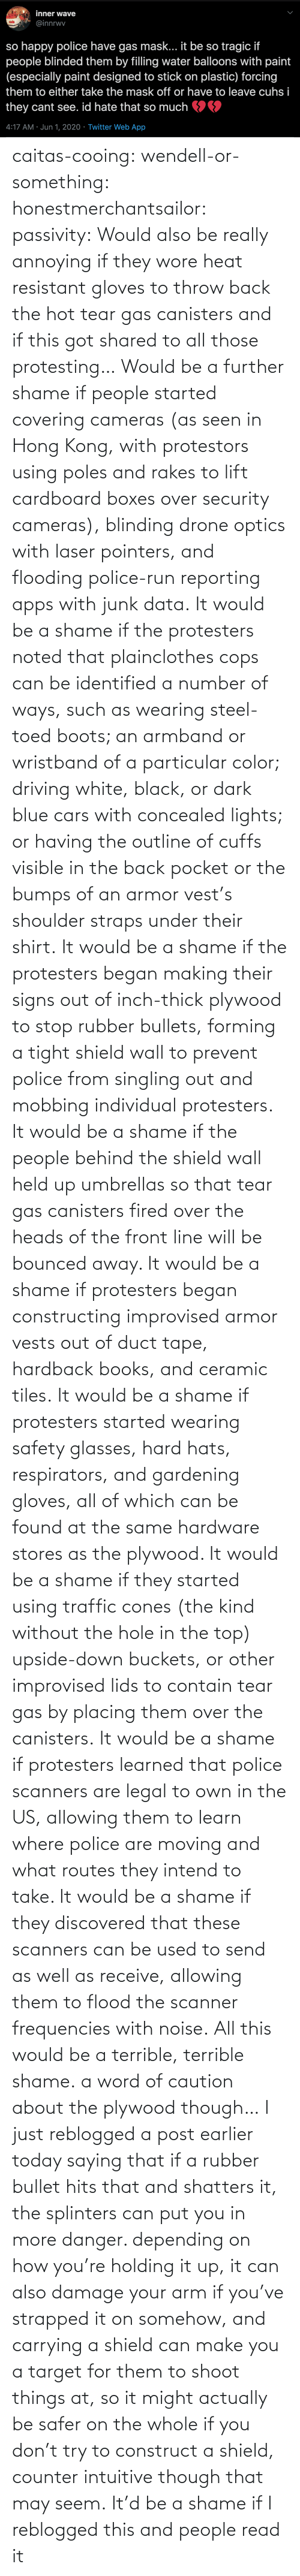 Actually: caitas-cooing:  wendell-or-something: honestmerchantsailor:  passivity: Would also be really annoying if they wore heat resistant gloves to throw back the hot tear gas canisters and if this got shared to all those protesting… Would be a further shame if people started covering cameras (as seen in Hong Kong, with protestors using poles and rakes to lift cardboard boxes over security cameras), blinding drone optics with laser pointers, and flooding police-run reporting apps with junk data. It would be a shame if the protesters noted that plainclothes cops can be identified a number of ways, such as wearing steel-toed boots; an armband or wristband of a particular color; driving white, black, or dark blue cars with concealed lights; or having the outline of cuffs visible in the back pocket or the bumps of an armor vest's shoulder straps under their shirt. It would be a shame if the protesters began making their signs out of inch-thick plywood to stop rubber bullets, forming a tight shield wall to prevent police from singling out and mobbing individual protesters. It would be a shame if the people behind the shield wall held up umbrellas so that tear gas canisters fired over the heads of the front line will be bounced away. It would be a shame if protesters began constructing improvised armor vests out of duct tape, hardback books, and ceramic tiles. It would be a shame if protesters started wearing safety glasses, hard hats, respirators, and gardening gloves, all of which can be found at the same hardware stores as the plywood. It would be a shame if they started using traffic cones (the kind without the hole in the top) upside-down buckets, or other improvised lids to contain tear gas by placing them over the canisters. It would be a shame if protesters learned that police scanners are legal to own in the US, allowing them to learn where police are moving and what routes they intend to take. It would be a shame if they discovered that these scanners can be used to send as well as receive, allowing them to flood the scanner frequencies with noise. All this would be a terrible, terrible shame.    a word of caution about the plywood though… I just reblogged a post earlier today saying that if a rubber bullet hits that and shatters it, the splinters can put you in more danger. depending on how you're holding it up, it can also damage your arm if you've strapped it on somehow, and carrying a shield can make you a target for them to shoot things at, so it might actually be safer on the whole if you don't try to construct a shield, counter intuitive though that may seem.    It'd be a shame if I reblogged this and people read it